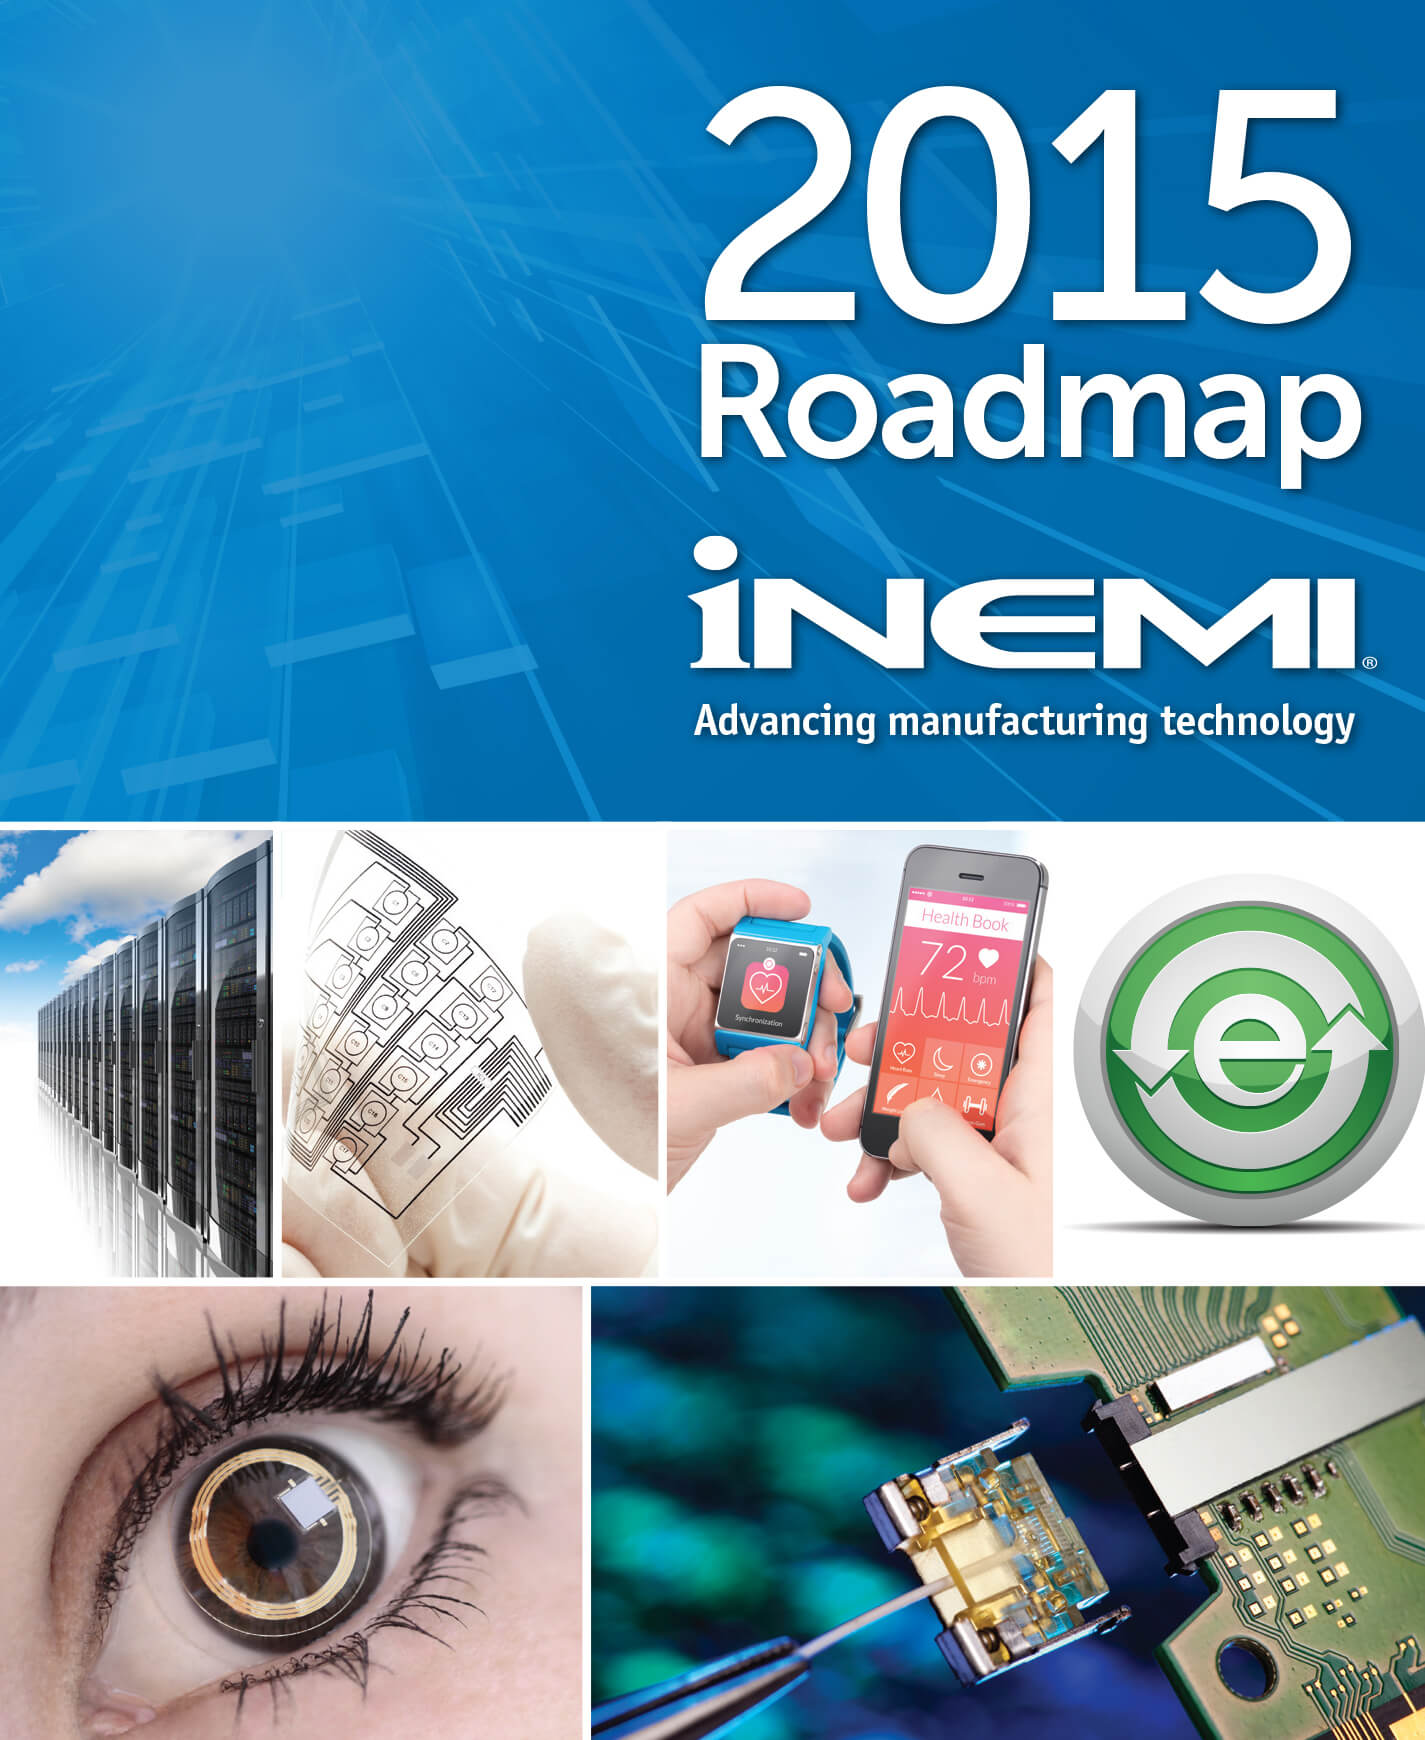 2015_Roadmap_booklet-cover_1.jpg